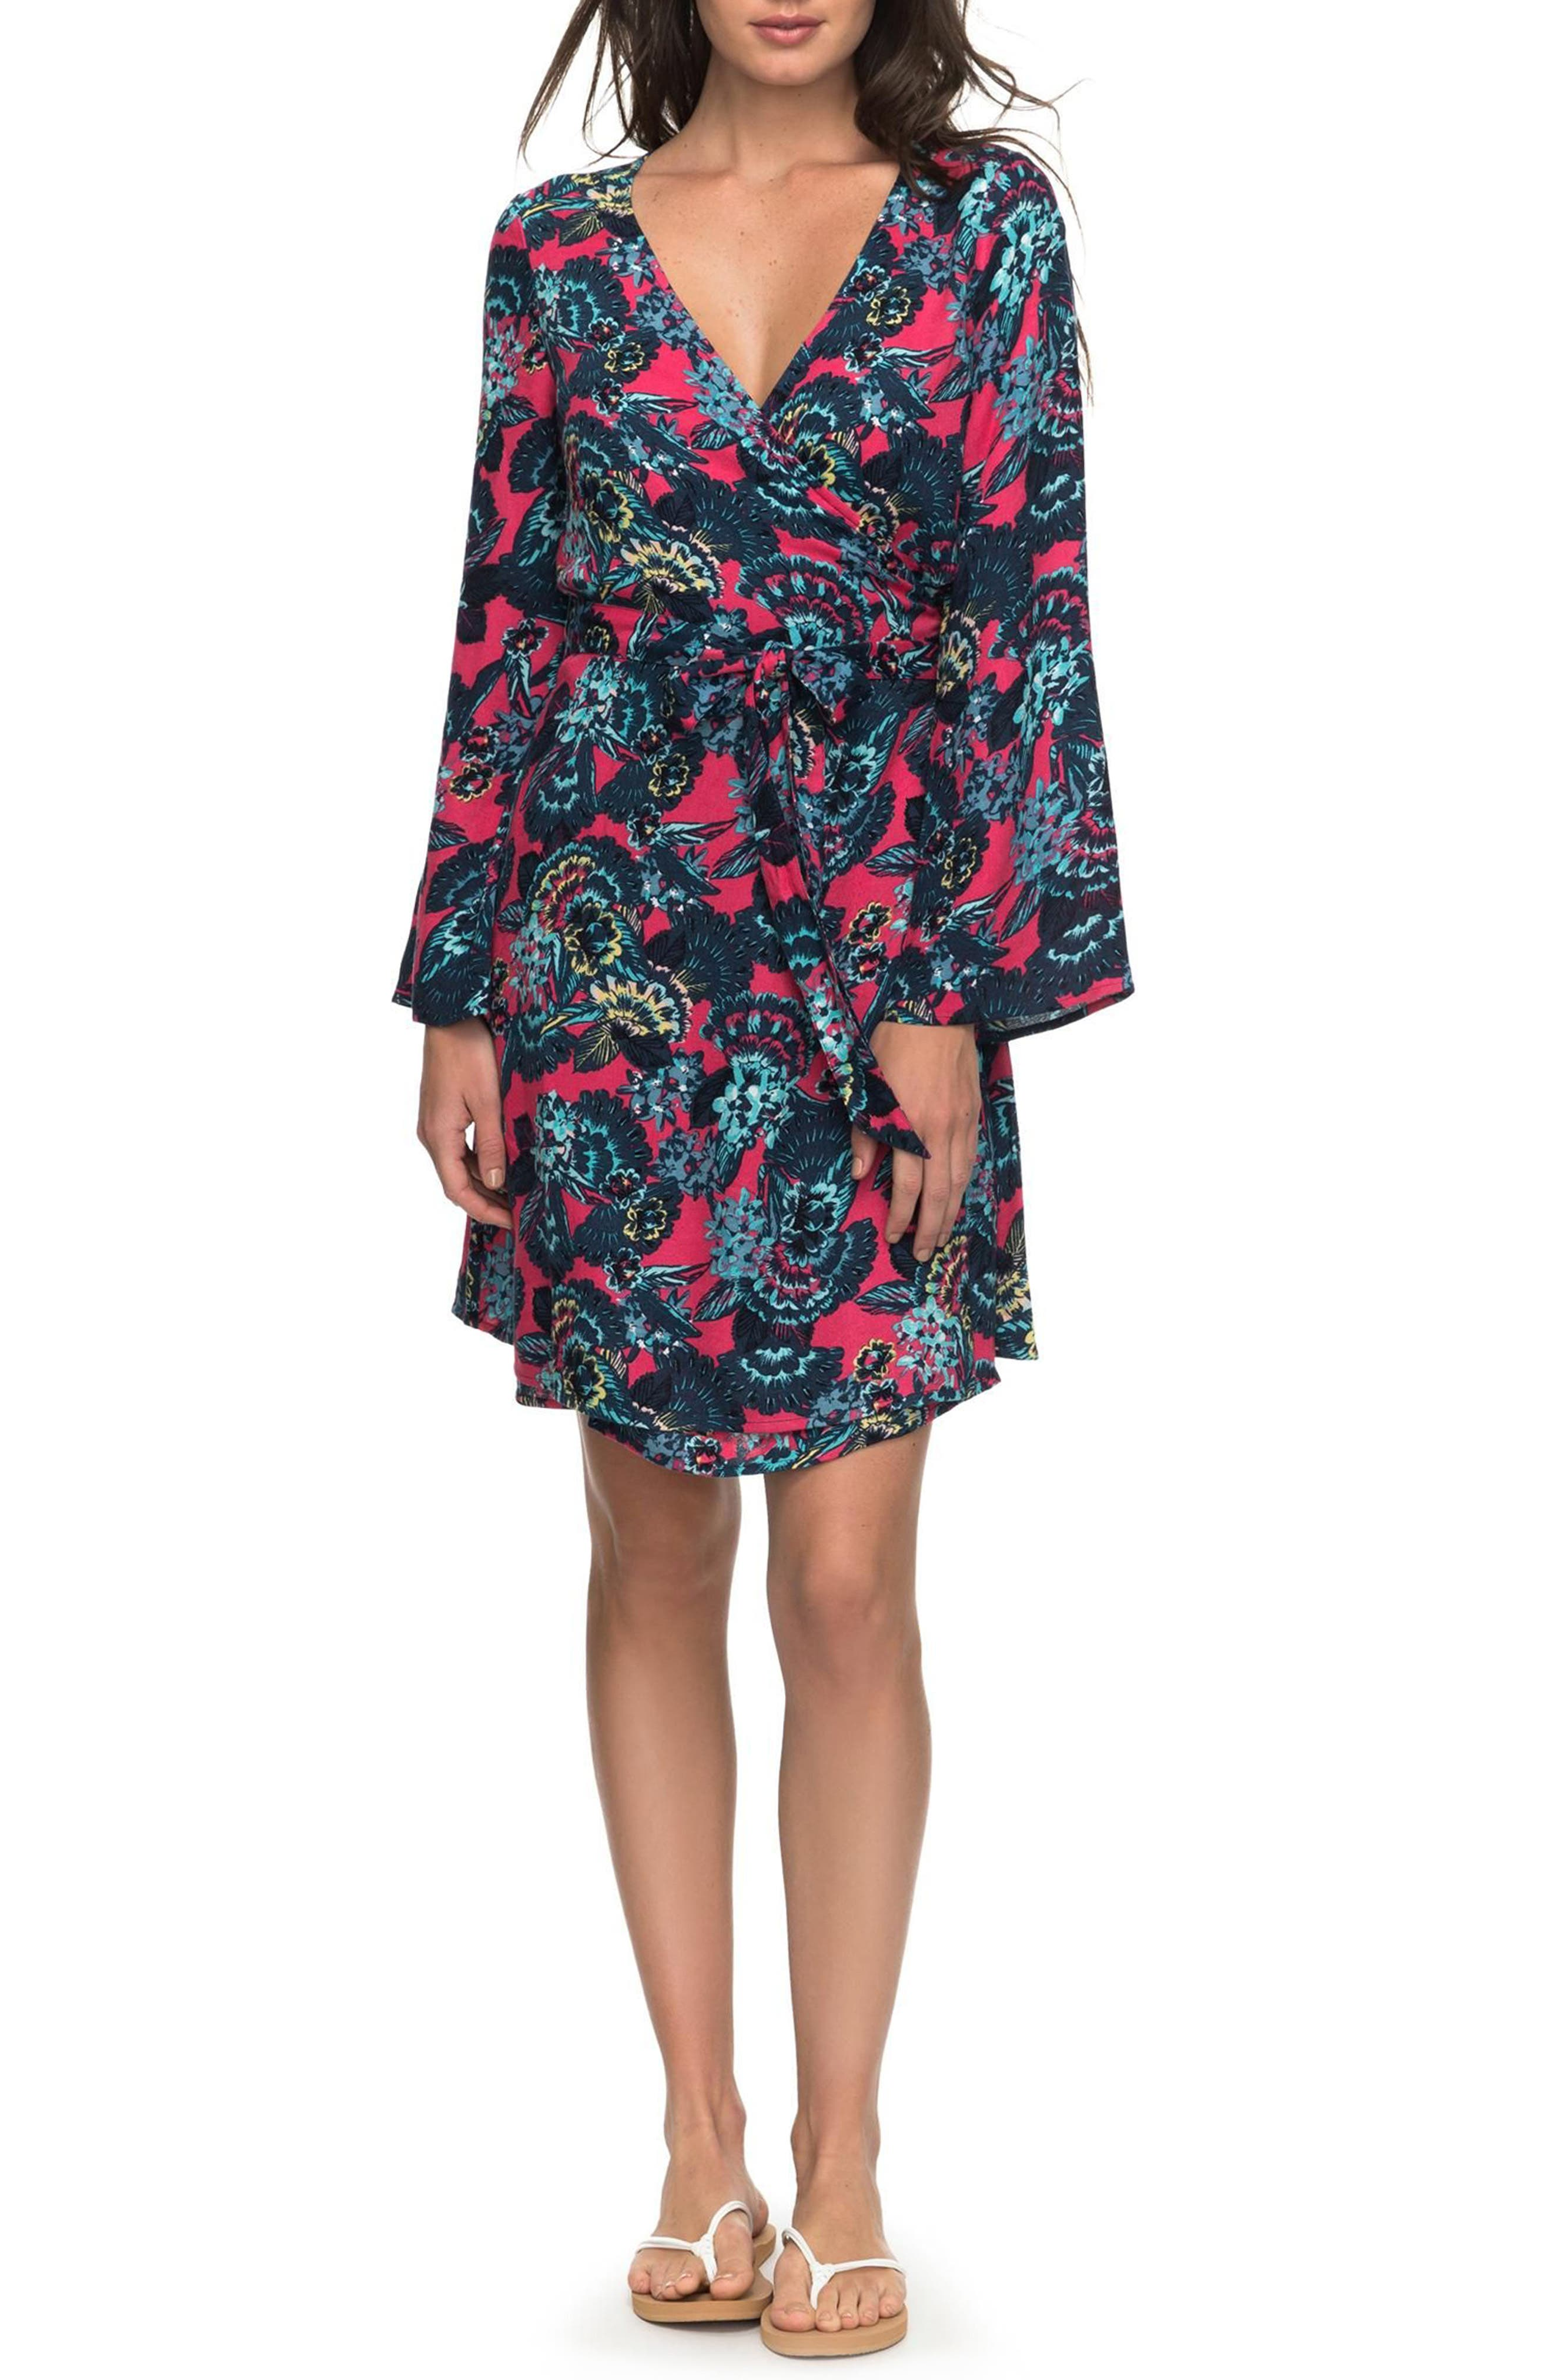 Roxy Small Hours Wrap Dress